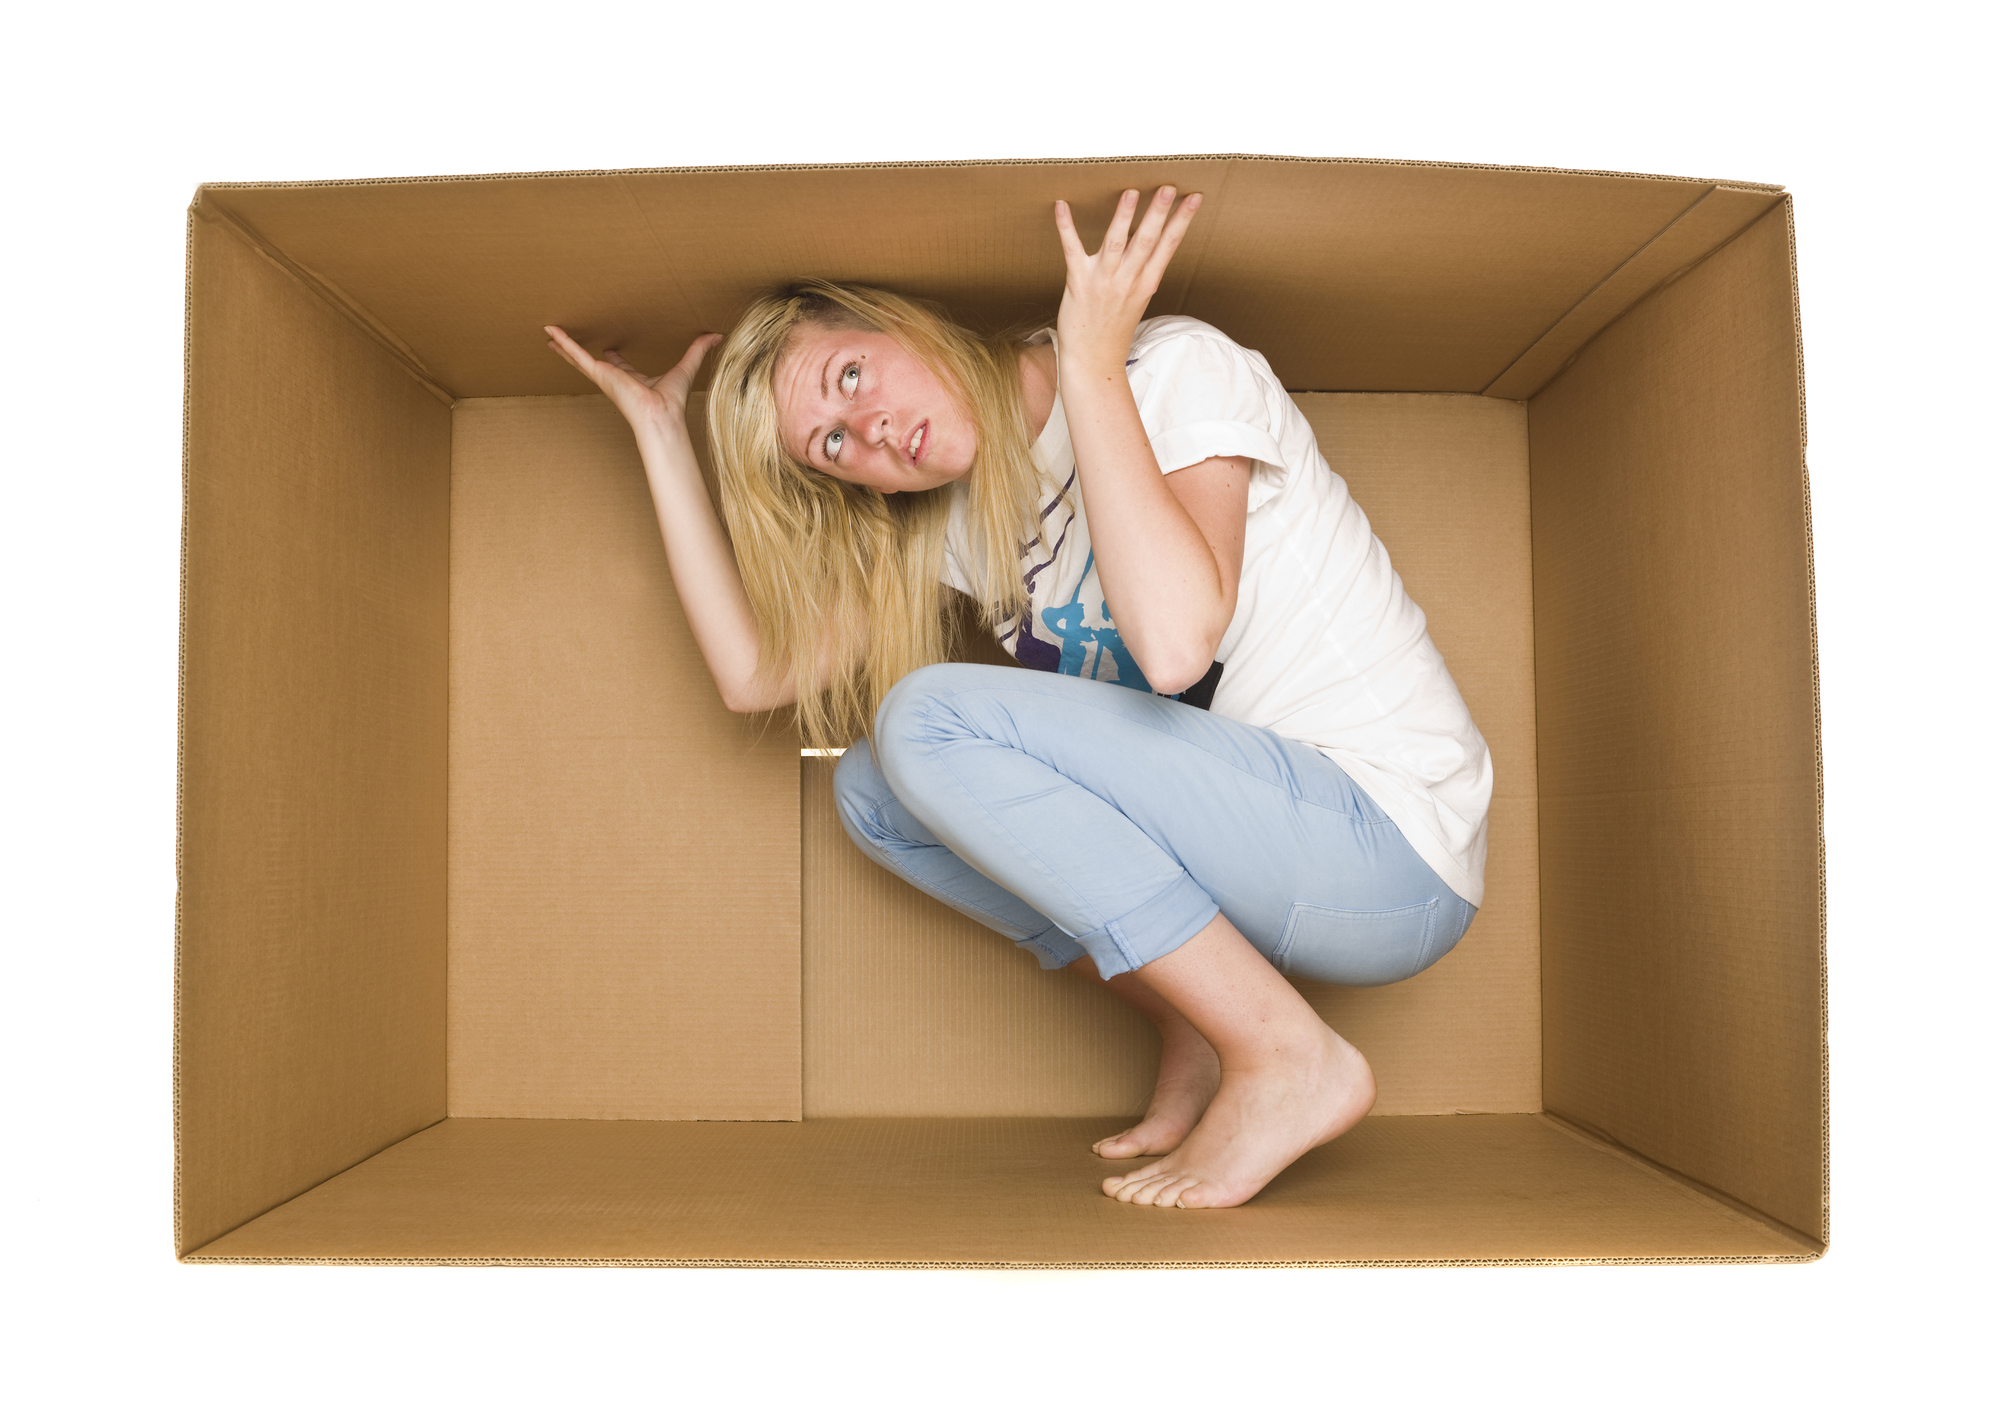 blond woman wearing jeans and white shirt, trapped inside cardboard box